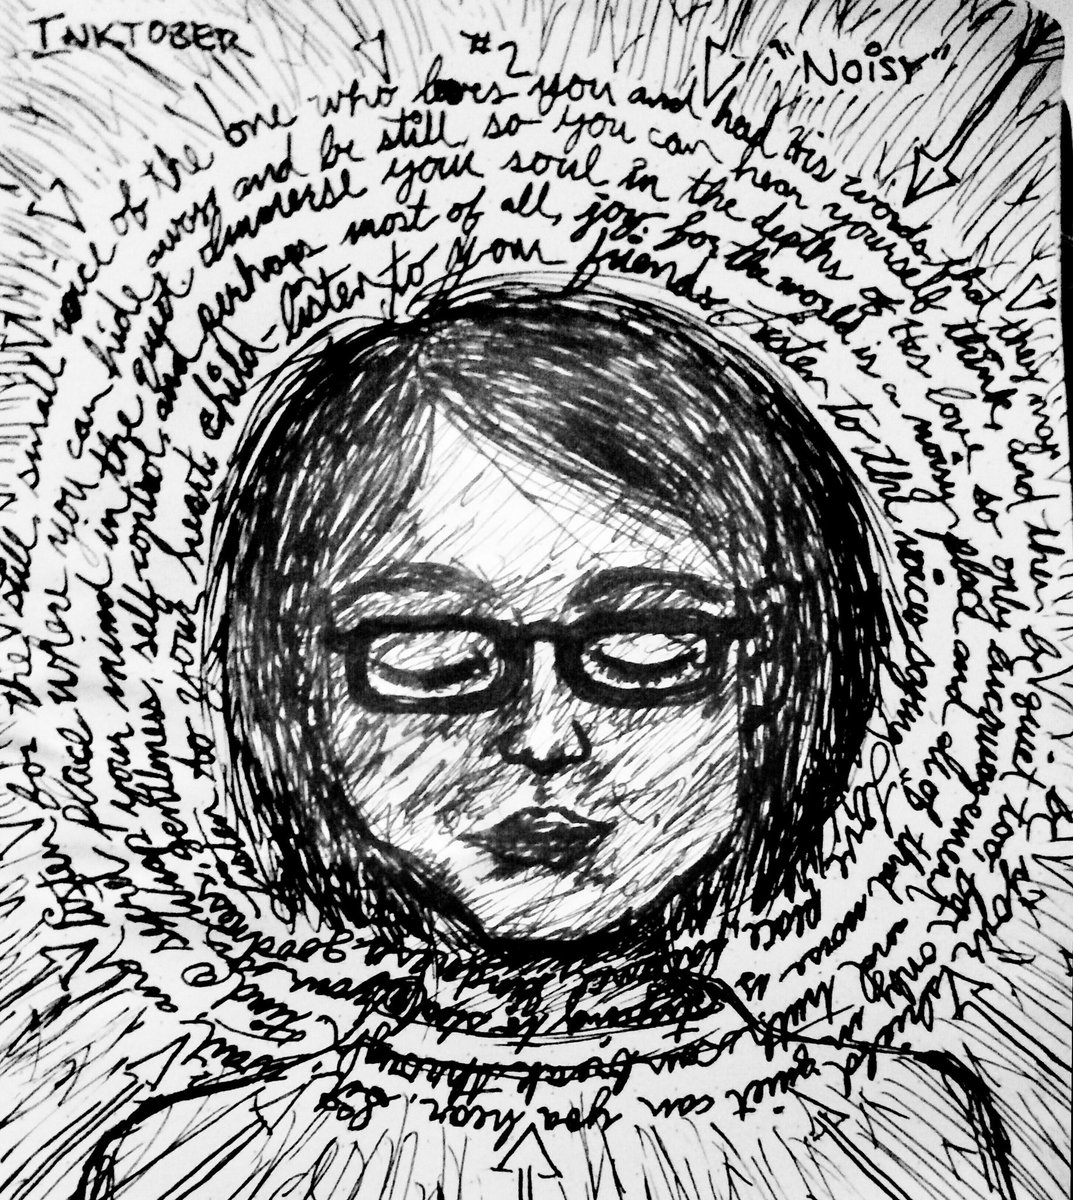 """<h4>Inktober #2 </h4>  One of my favorite #Inktober drawings was from the second prompt, """"Noisy"""" – it turned out as a self-portrait in which carefully choosing which words I listen to turns them into a shield against the rest of the noise coming at me."""